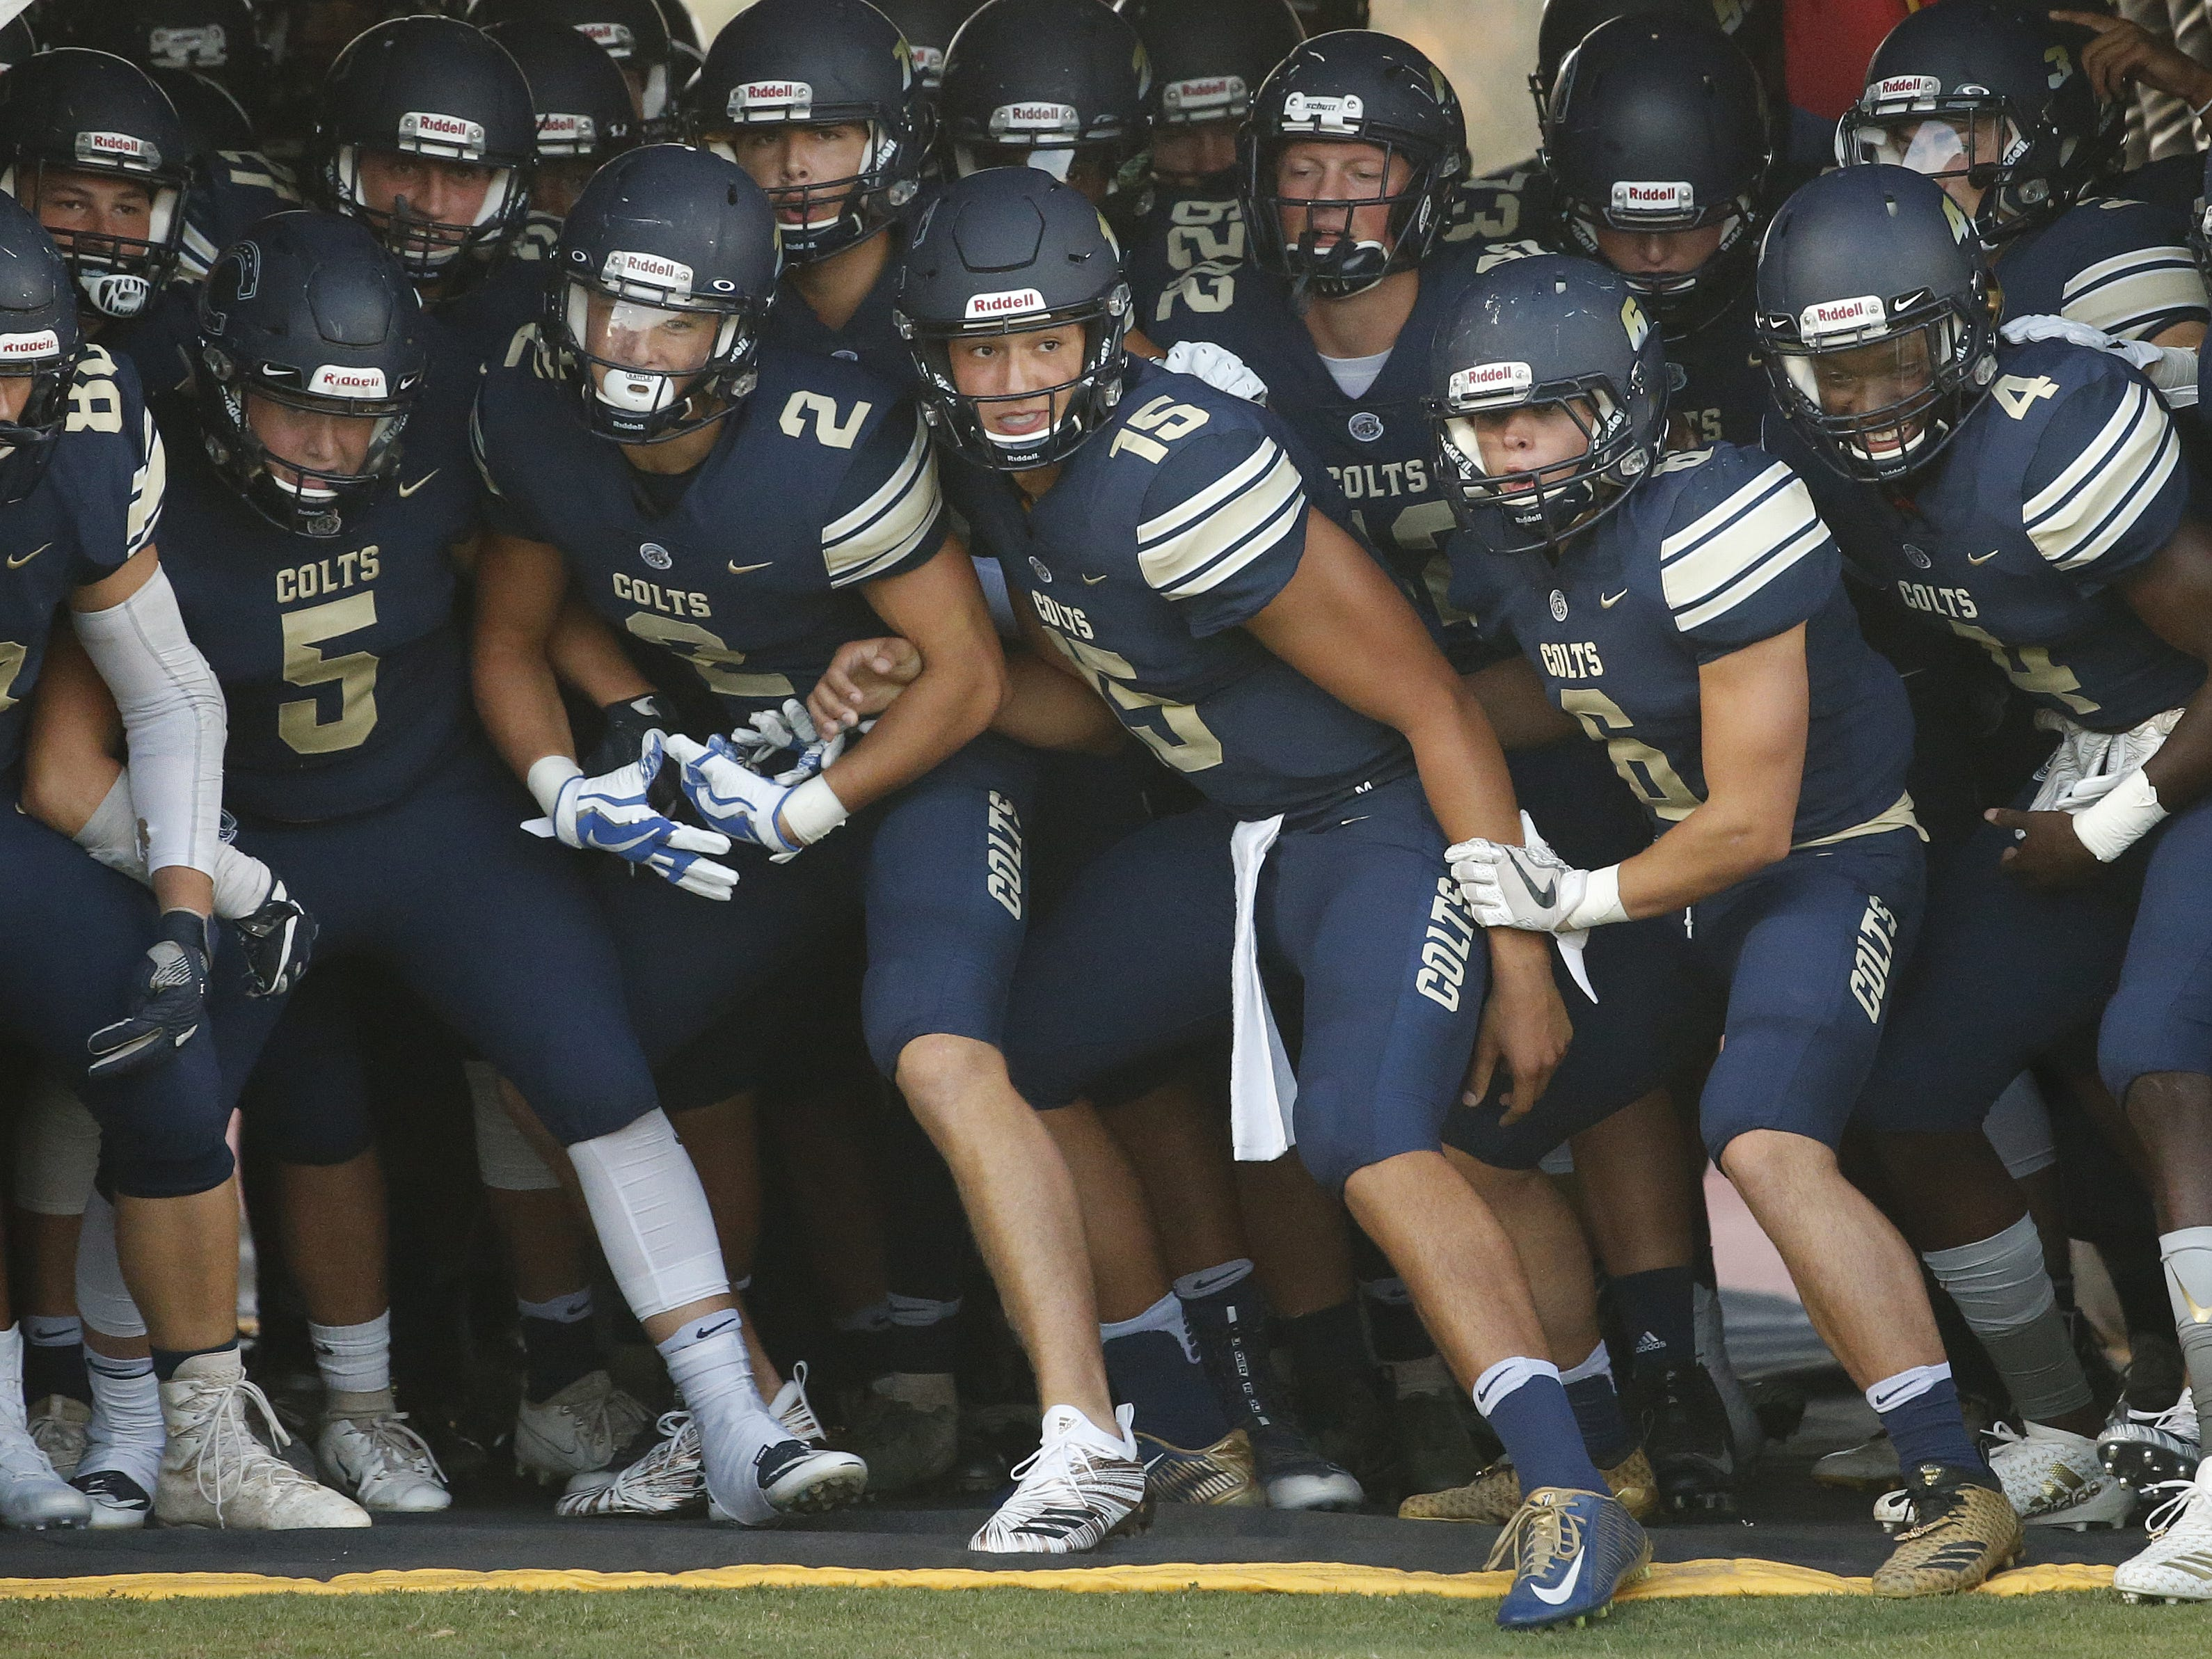 Casteel takes the field to play Centennial at Casteel High School in Queen Creek, Ariz. on Aug. 17, 2018.